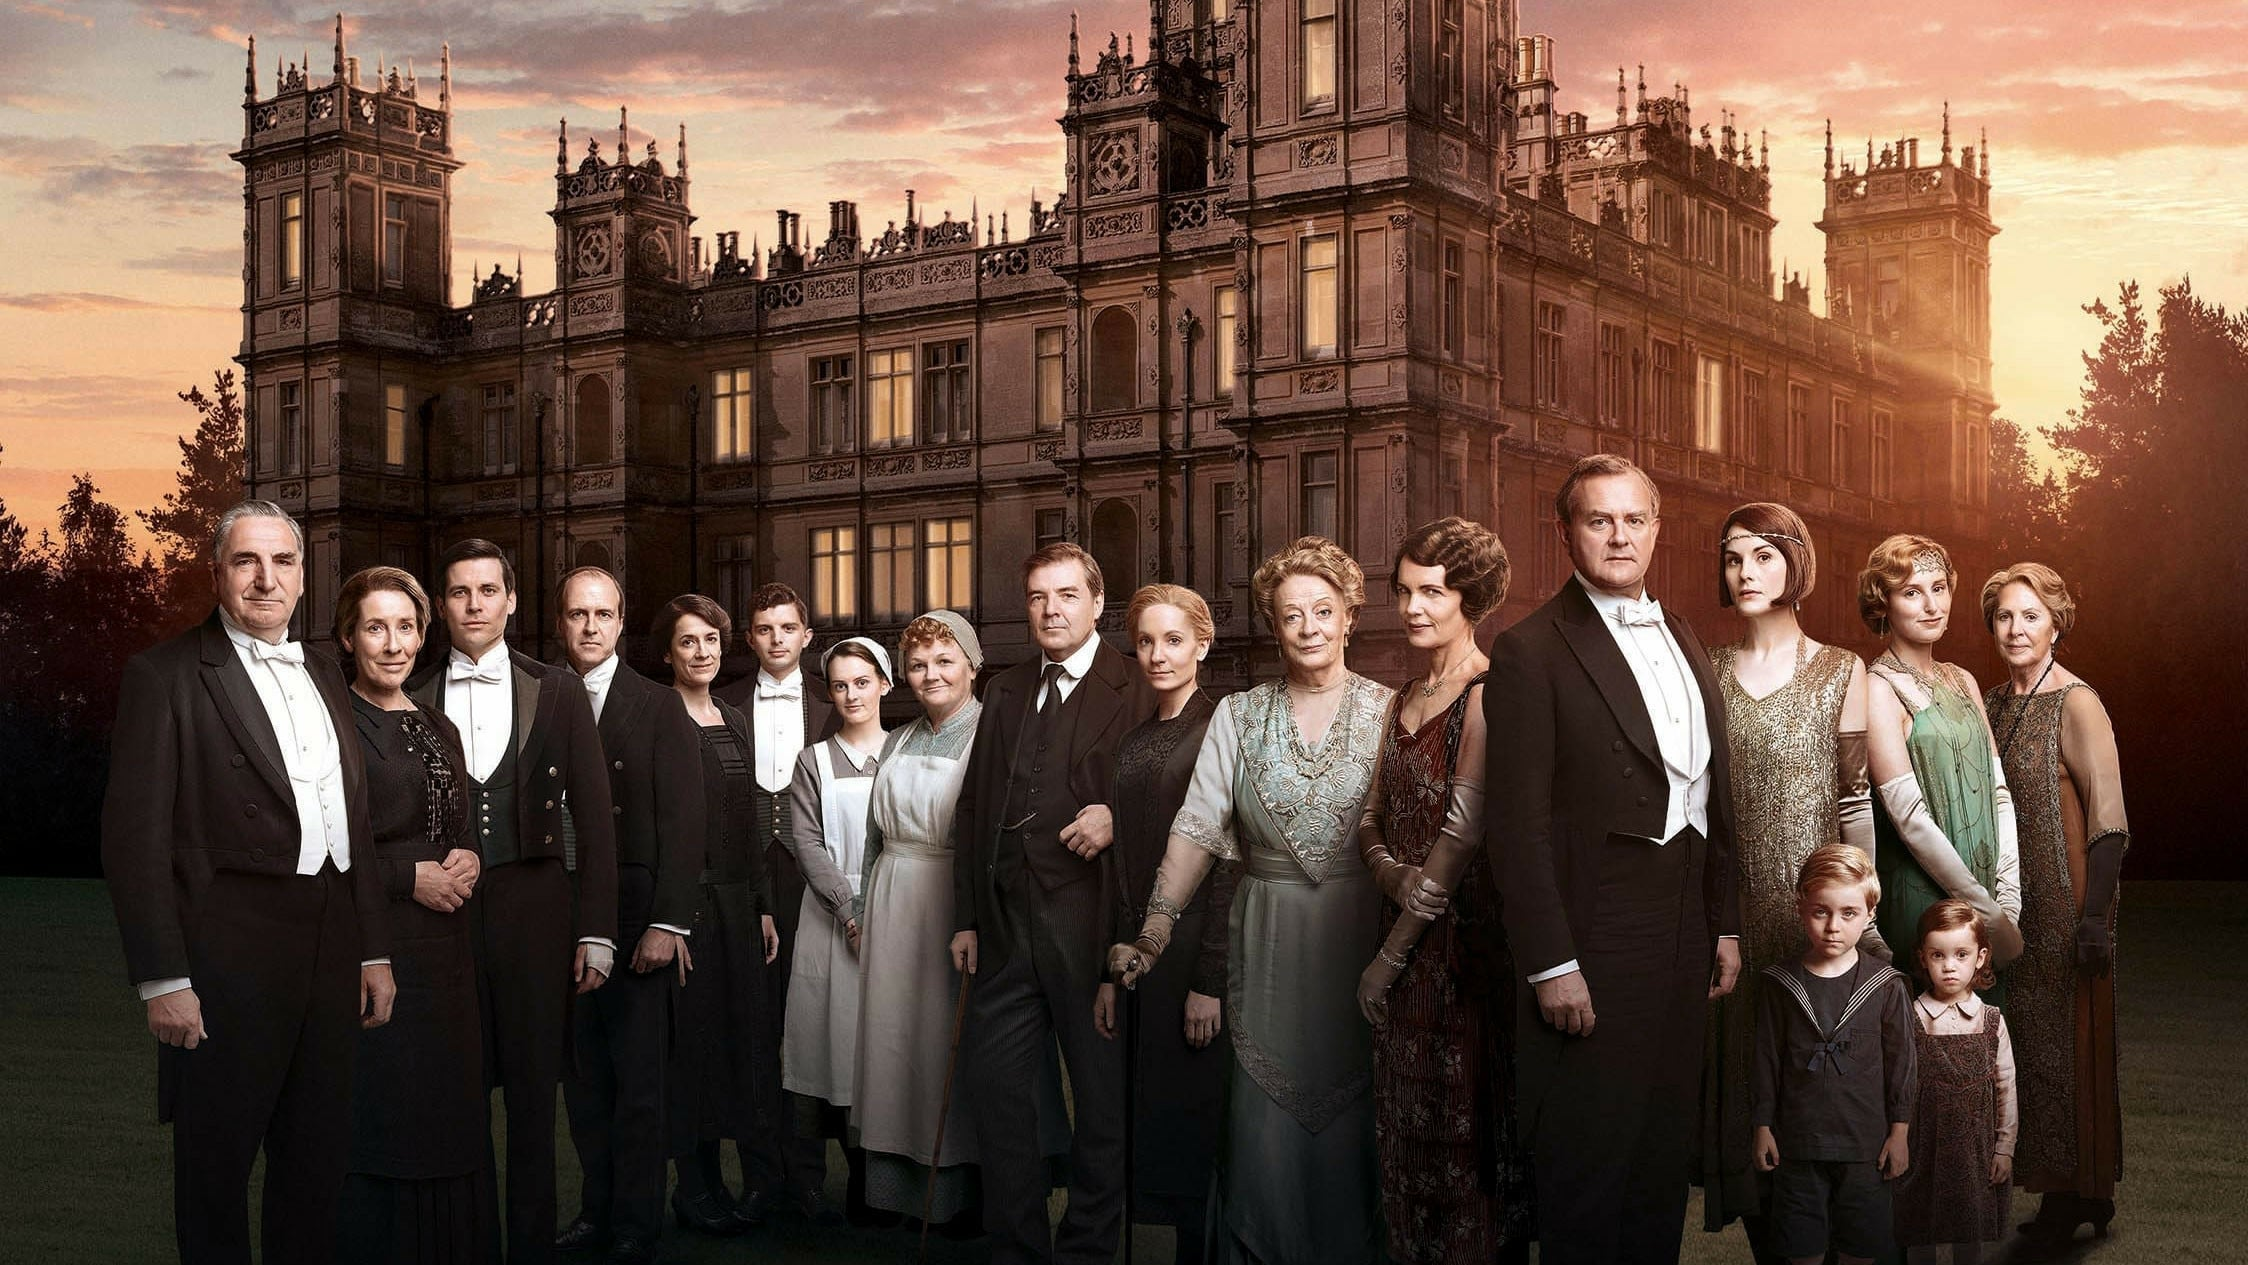 15 Shows for Fans of Downton Abbey